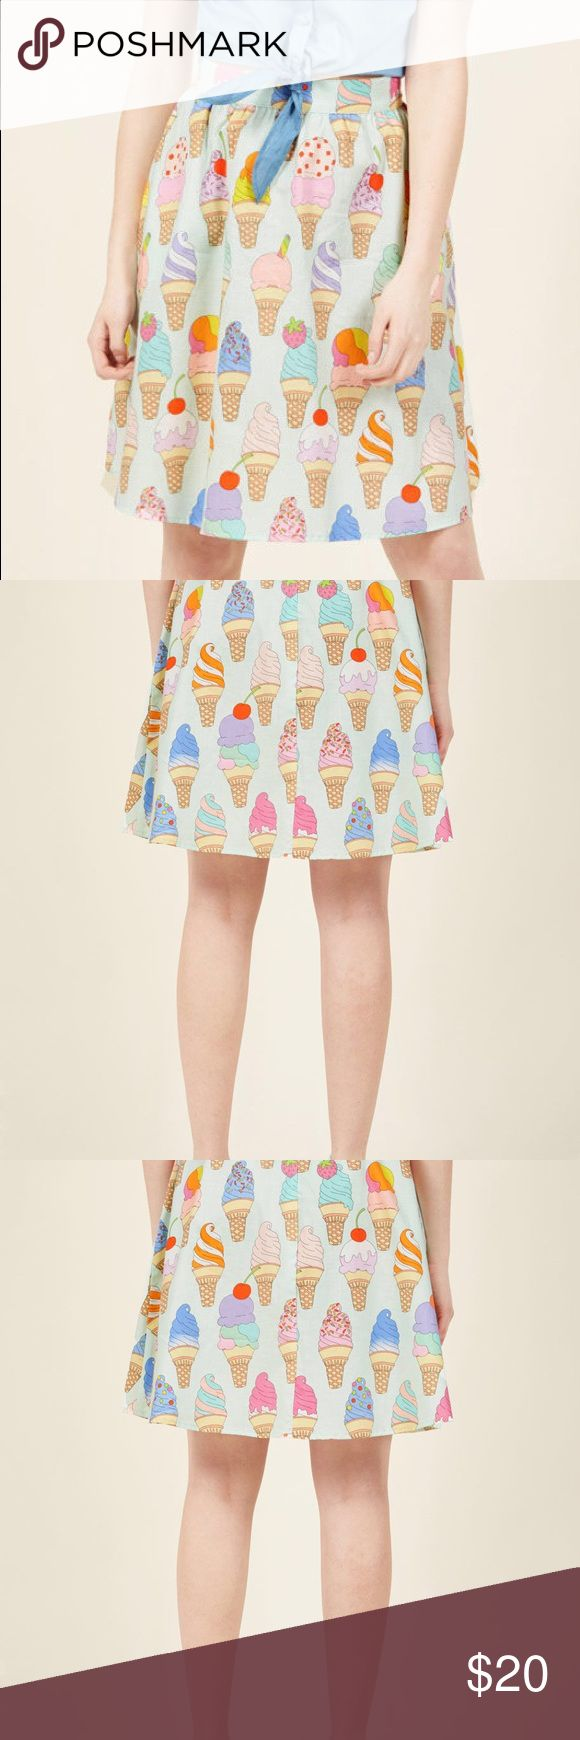 ModCloth ice cream skirt ModCloth ice cream skirt - only worn twice. Has zipper and elastic at waist. Modcloth Skirts